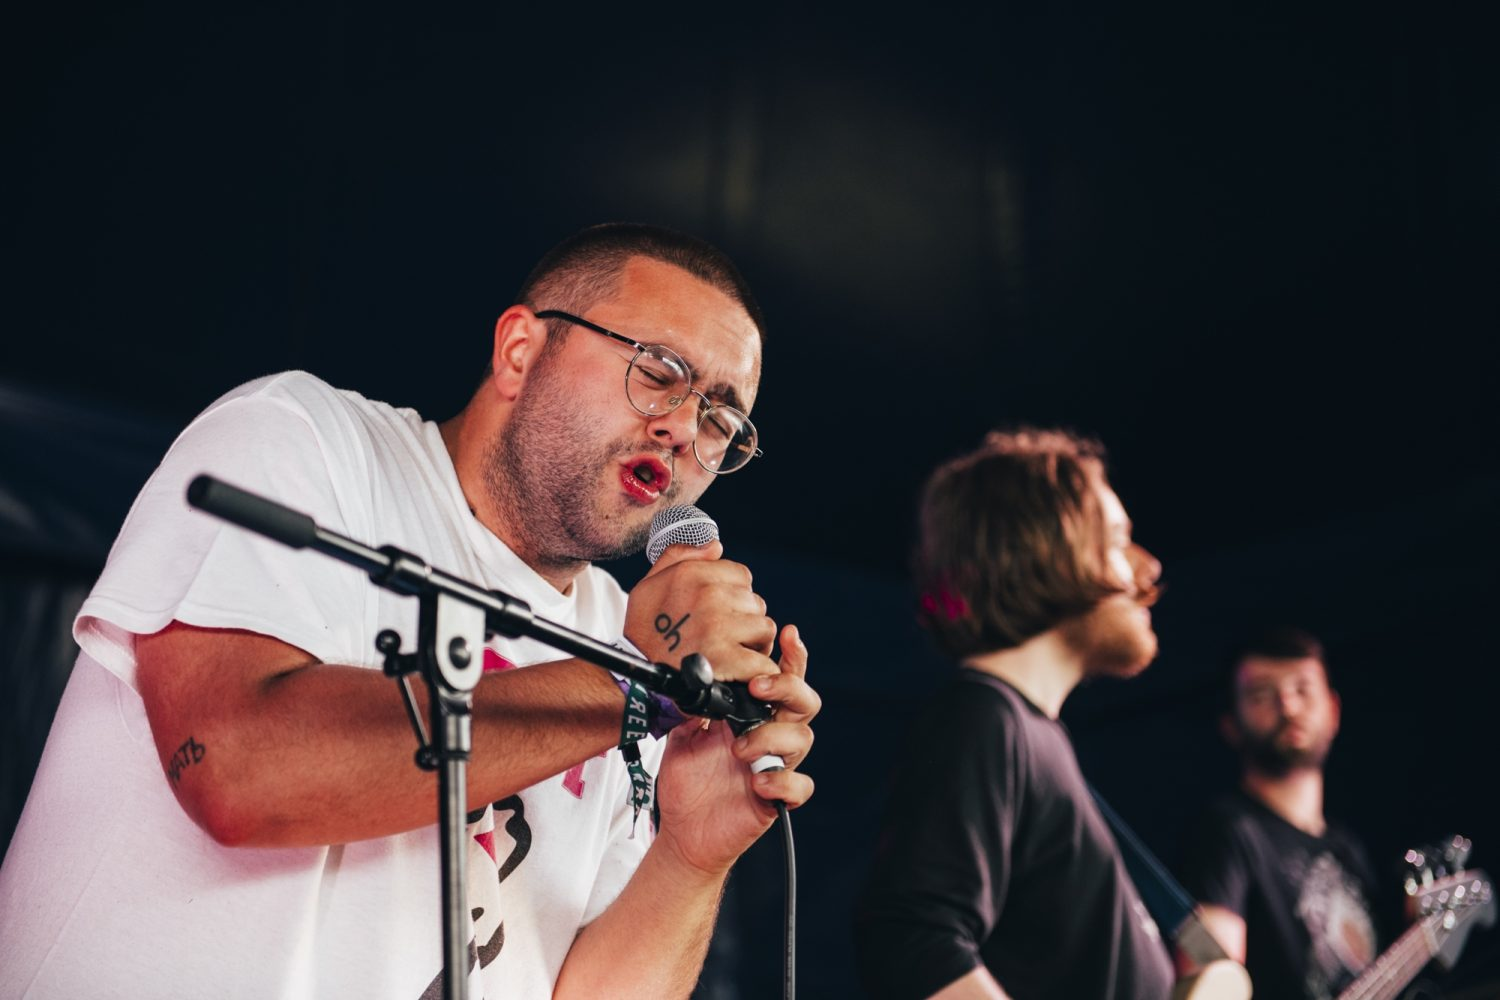 Check out these photos of itoldyouiwouldeatyou at 2000trees 2019